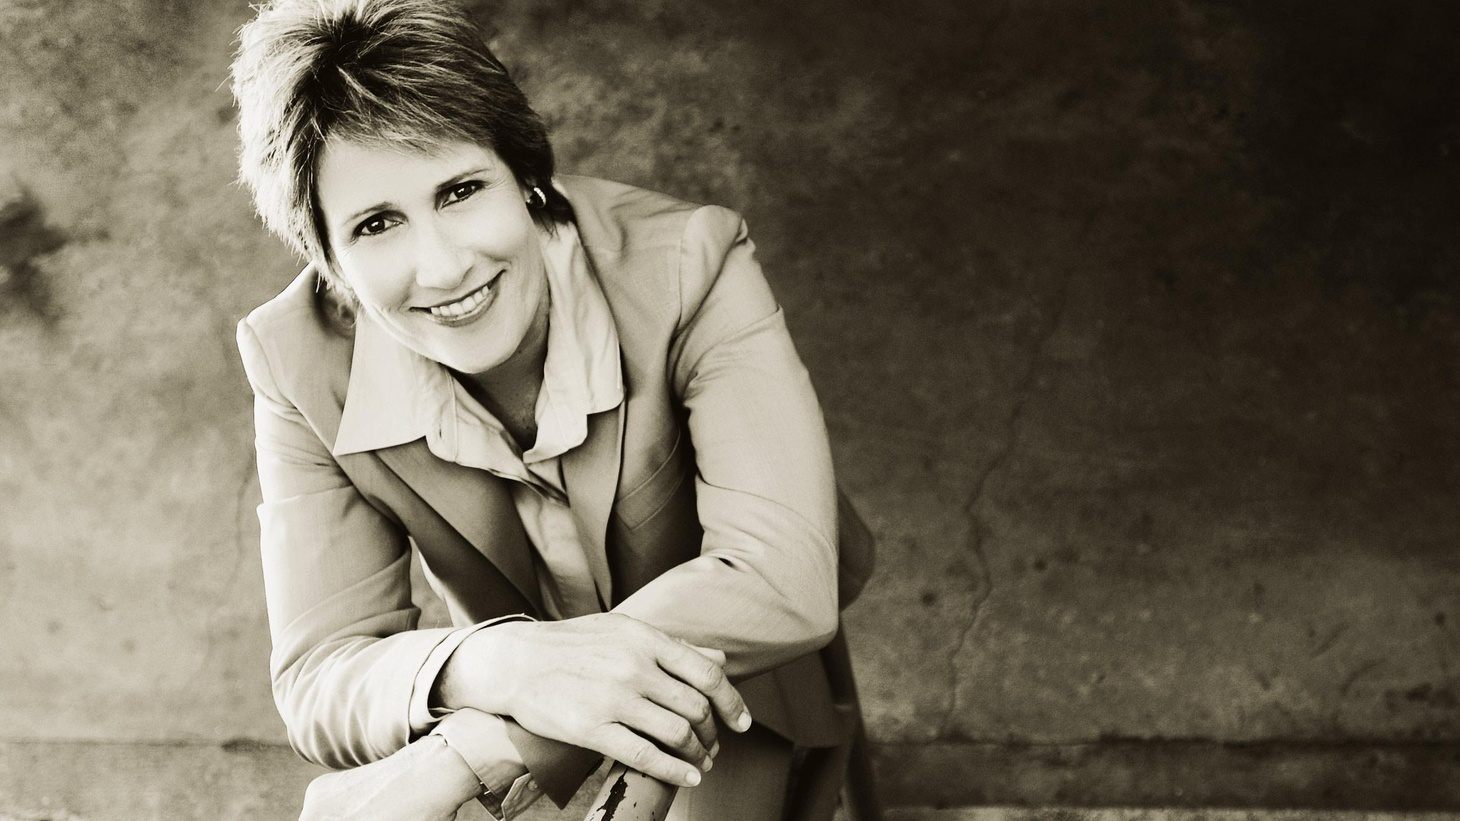 Diana Nyad joins Matt Holzman back in the KCRW studios for a look at her big dream and her hopes for the future...